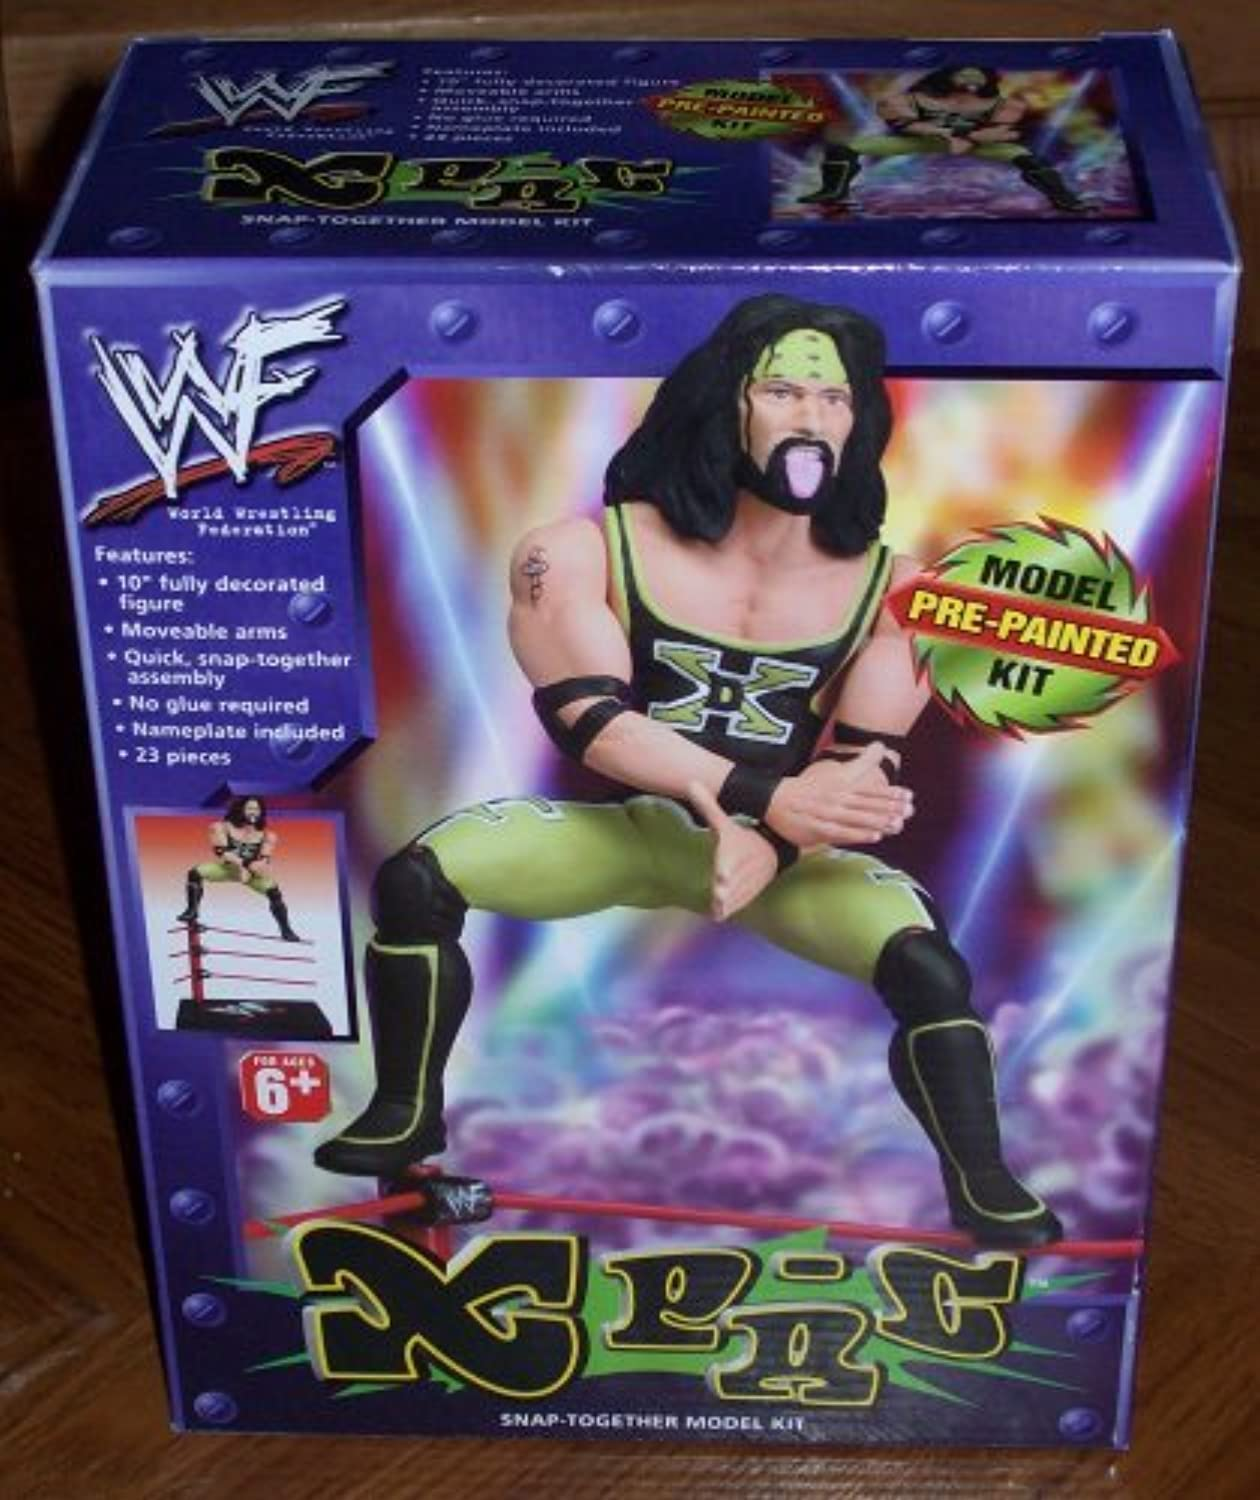 WWF XPac Prepainted Snaptogether Model Kit